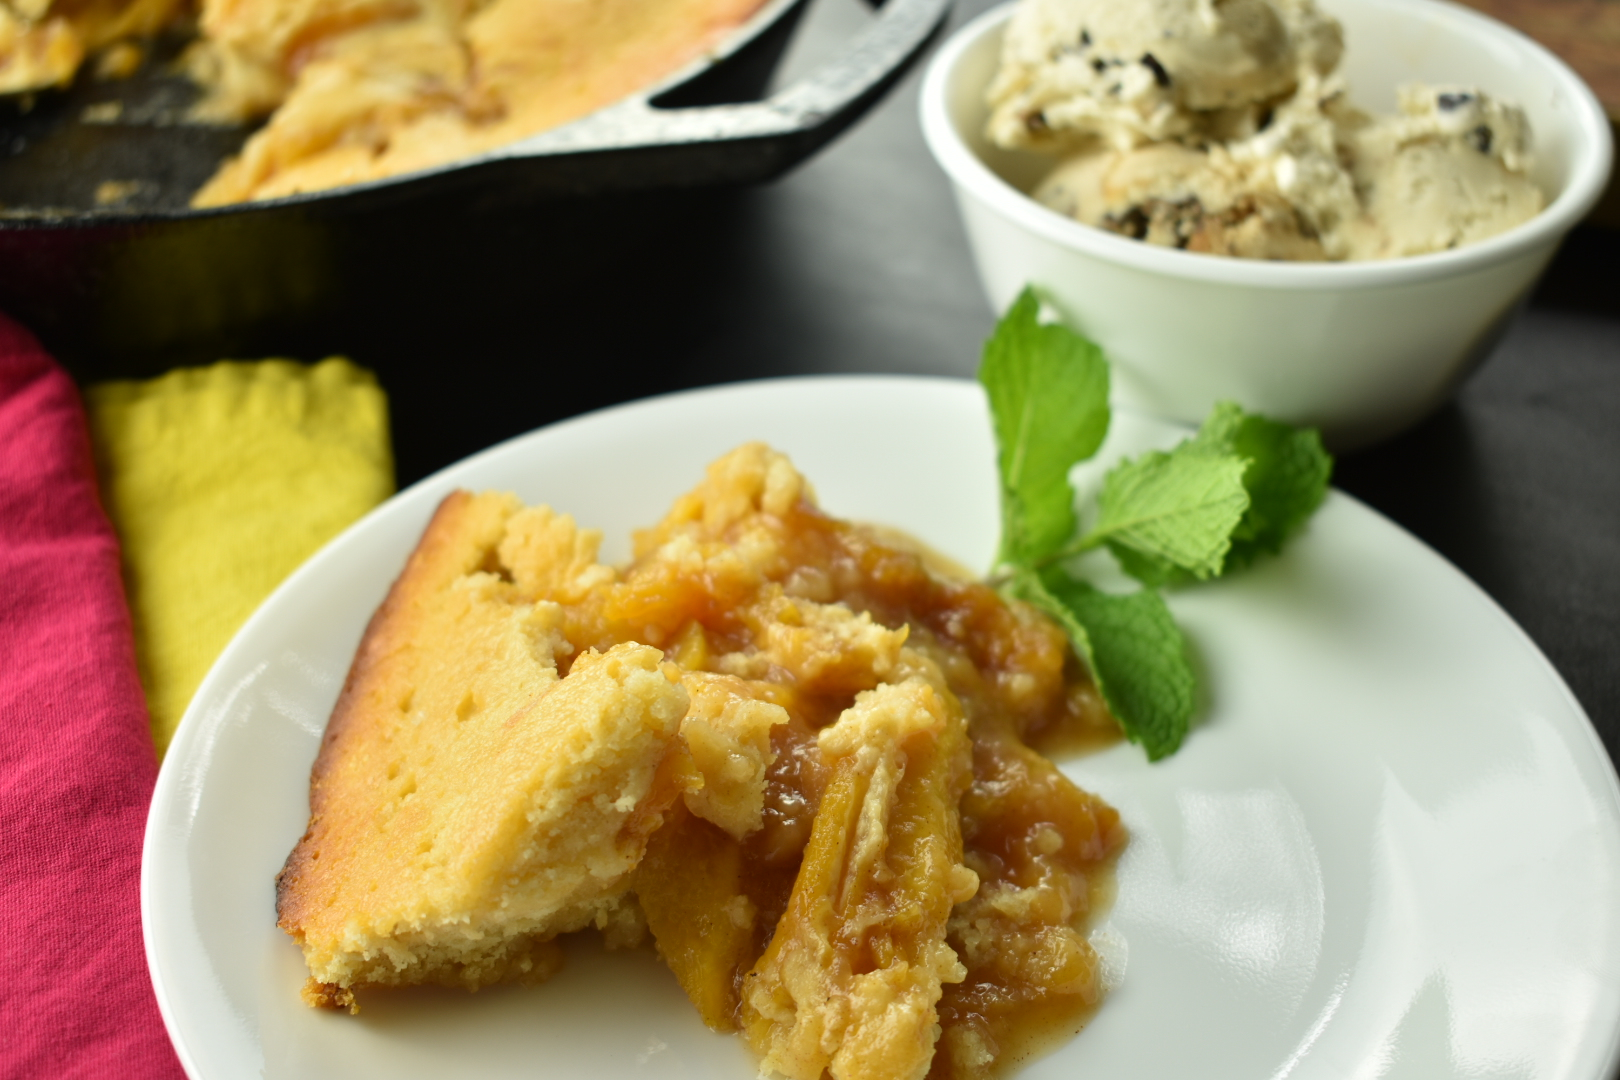 Skillet Peach Cobbler with Ginger and Star Anise